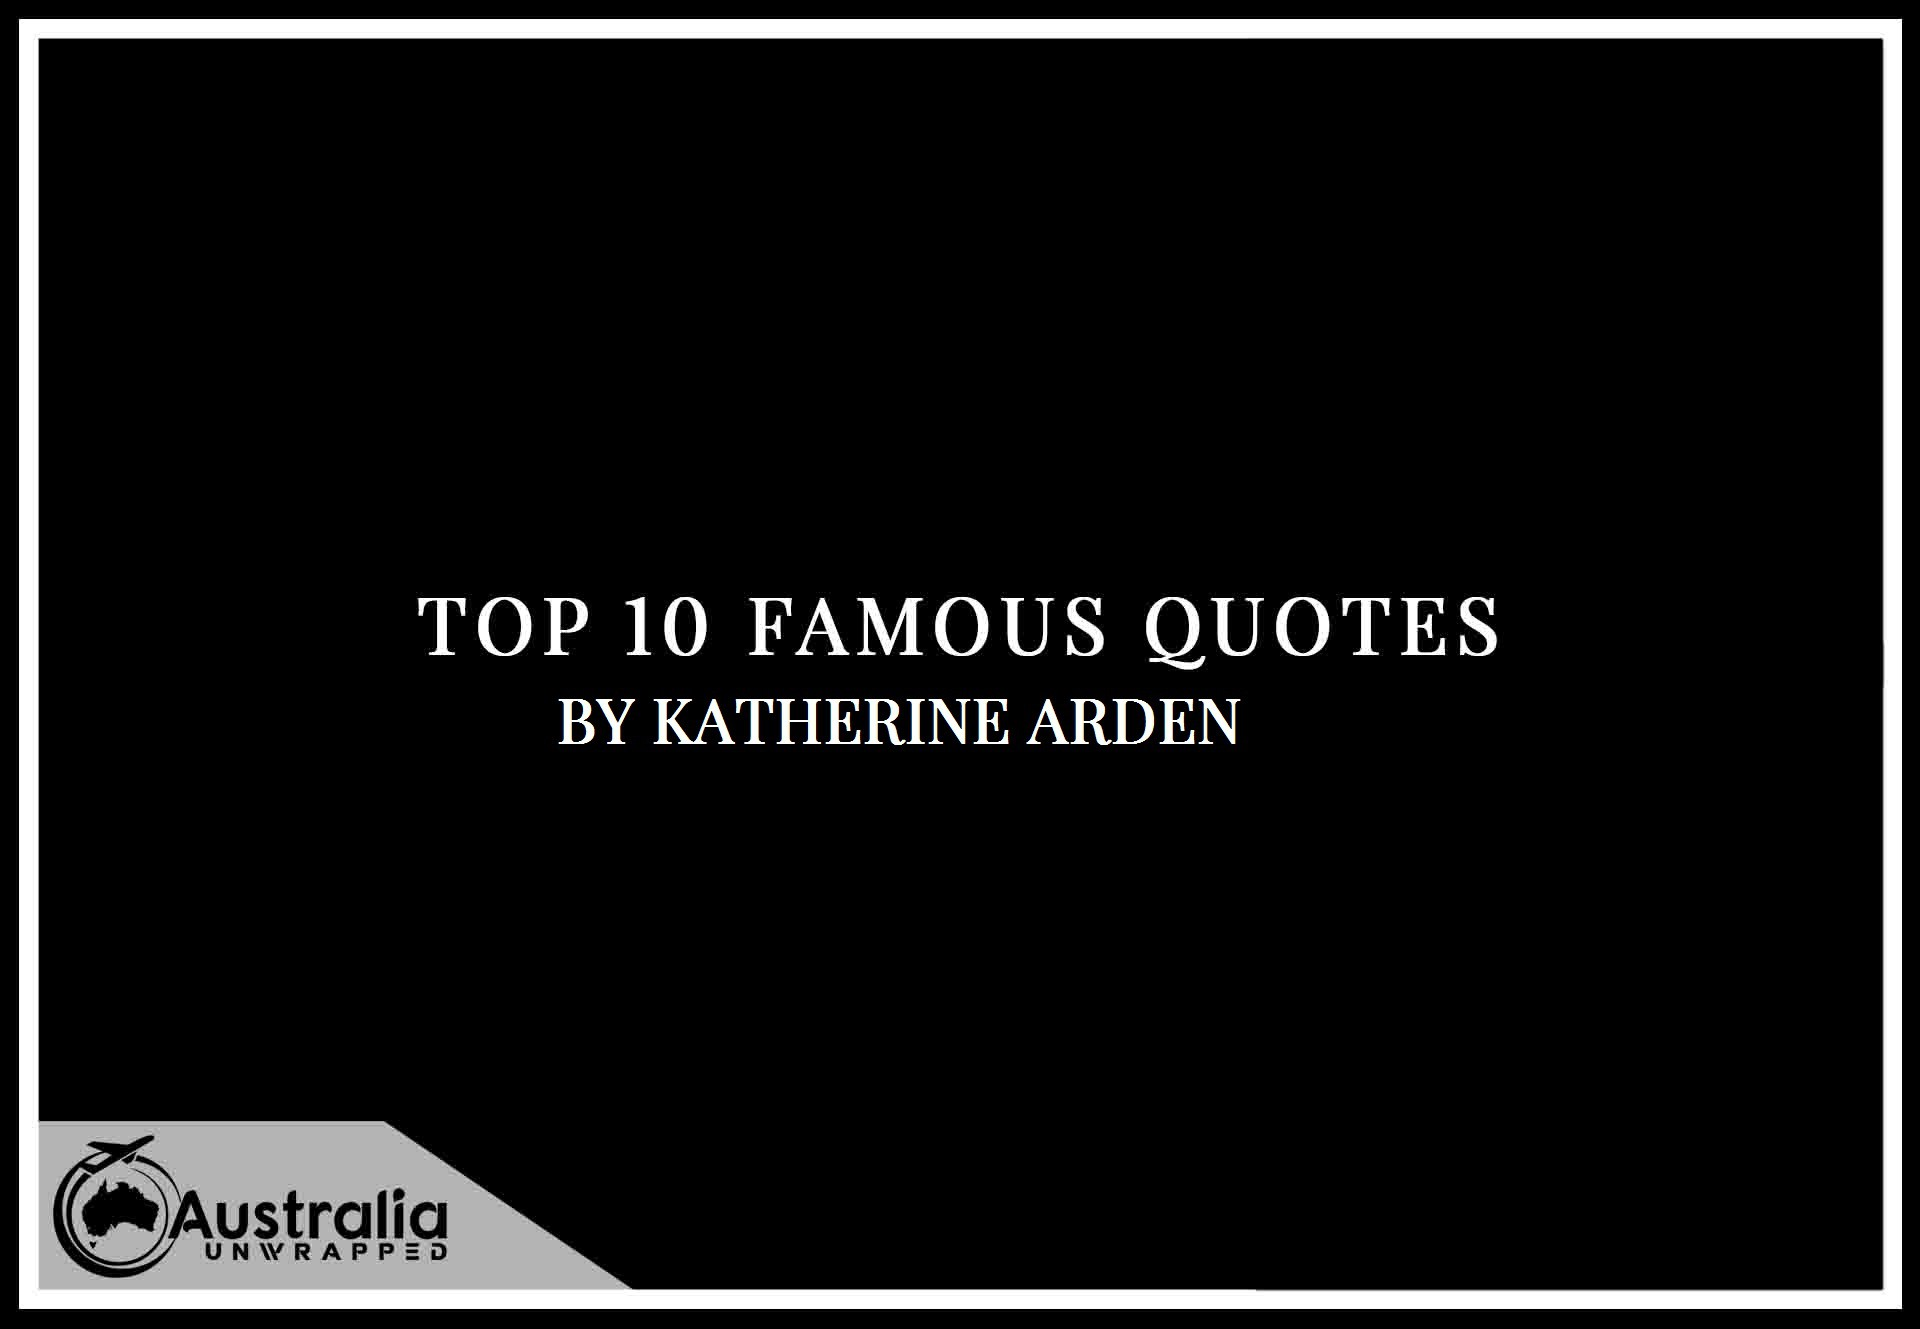 Katherine Arden's Top 10 Popular and Famous Quotes